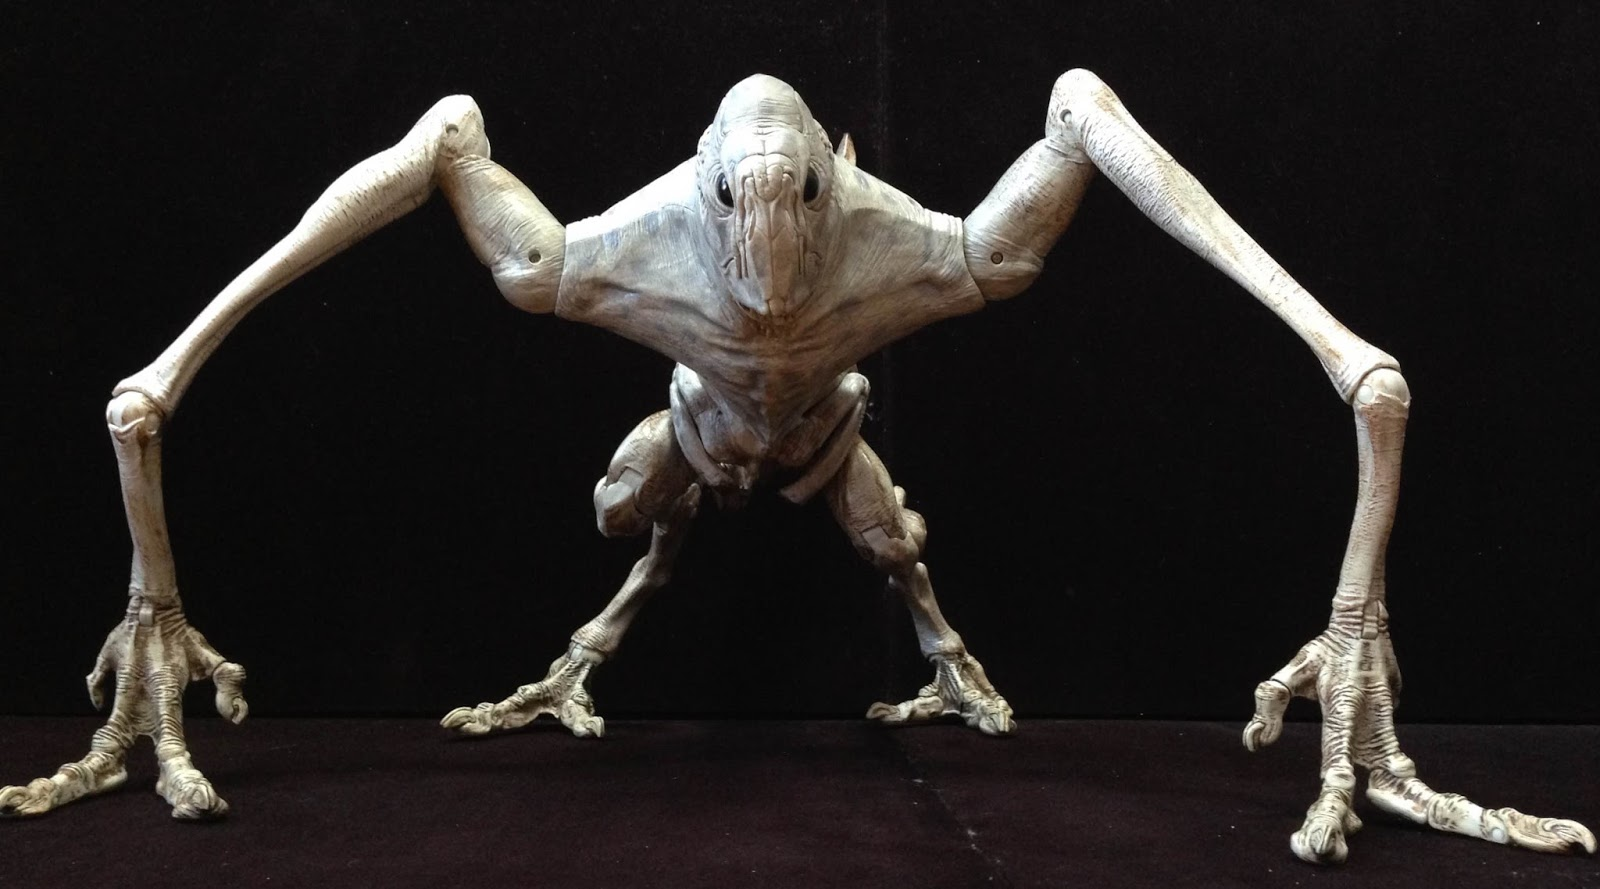 cloverfield crutch monster